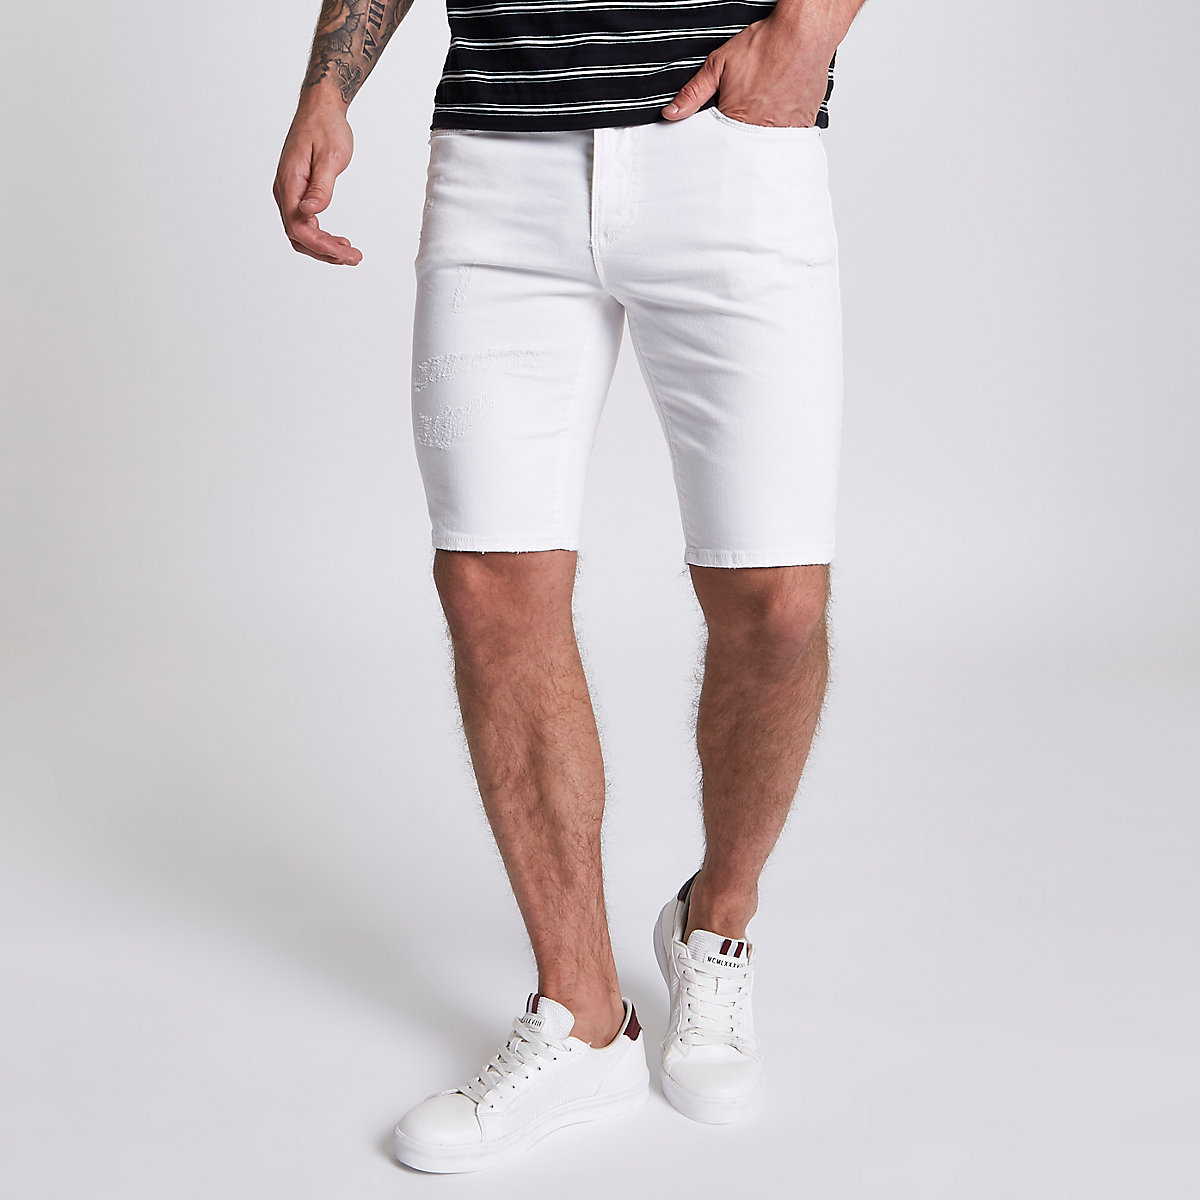 Fashion week Denim white shorts men for woman